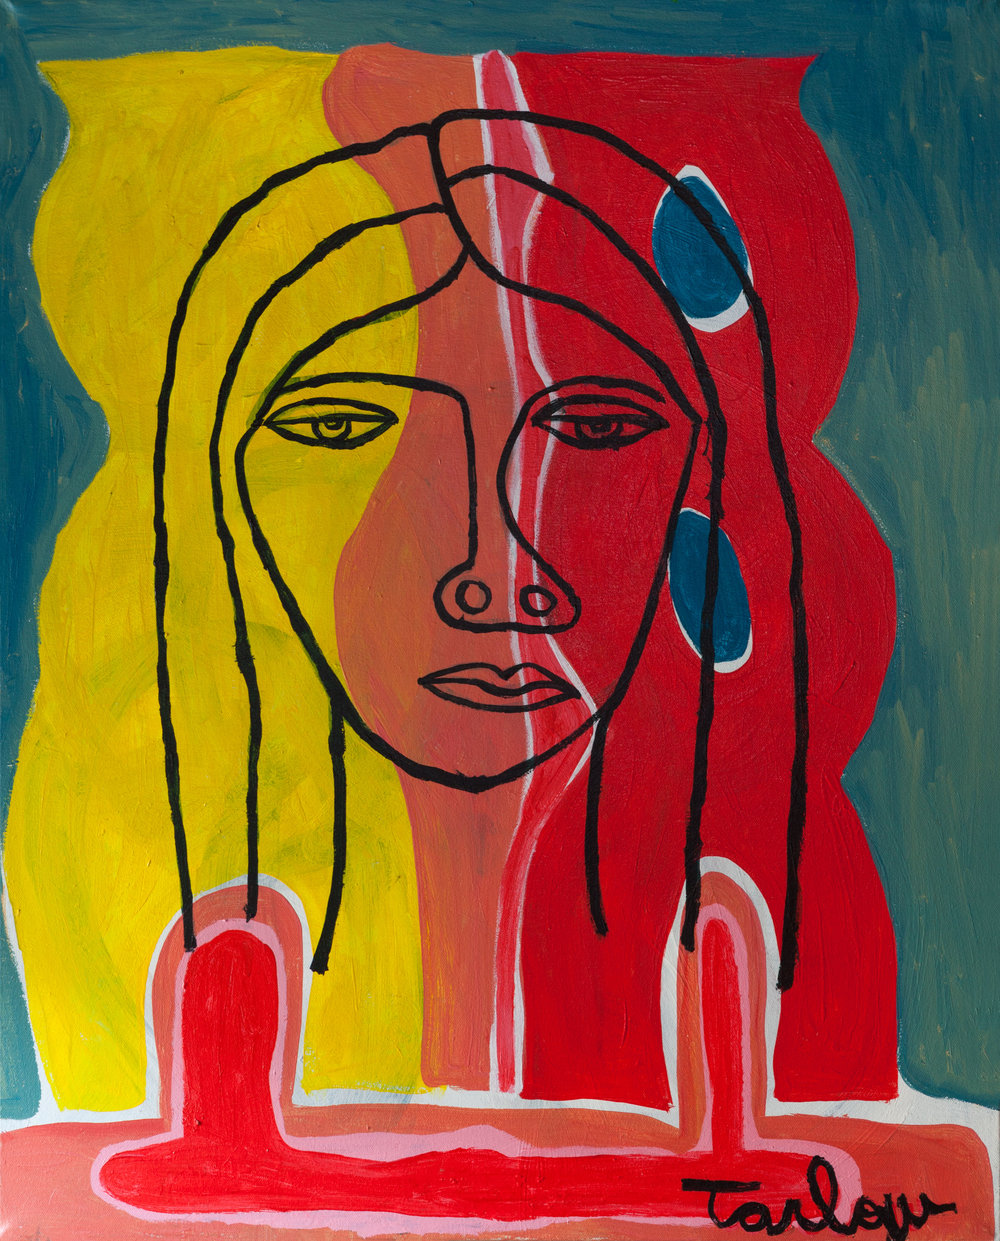 Béa - Acrylic on canvas30 x 24 inches$2,000(Click on image for detail)